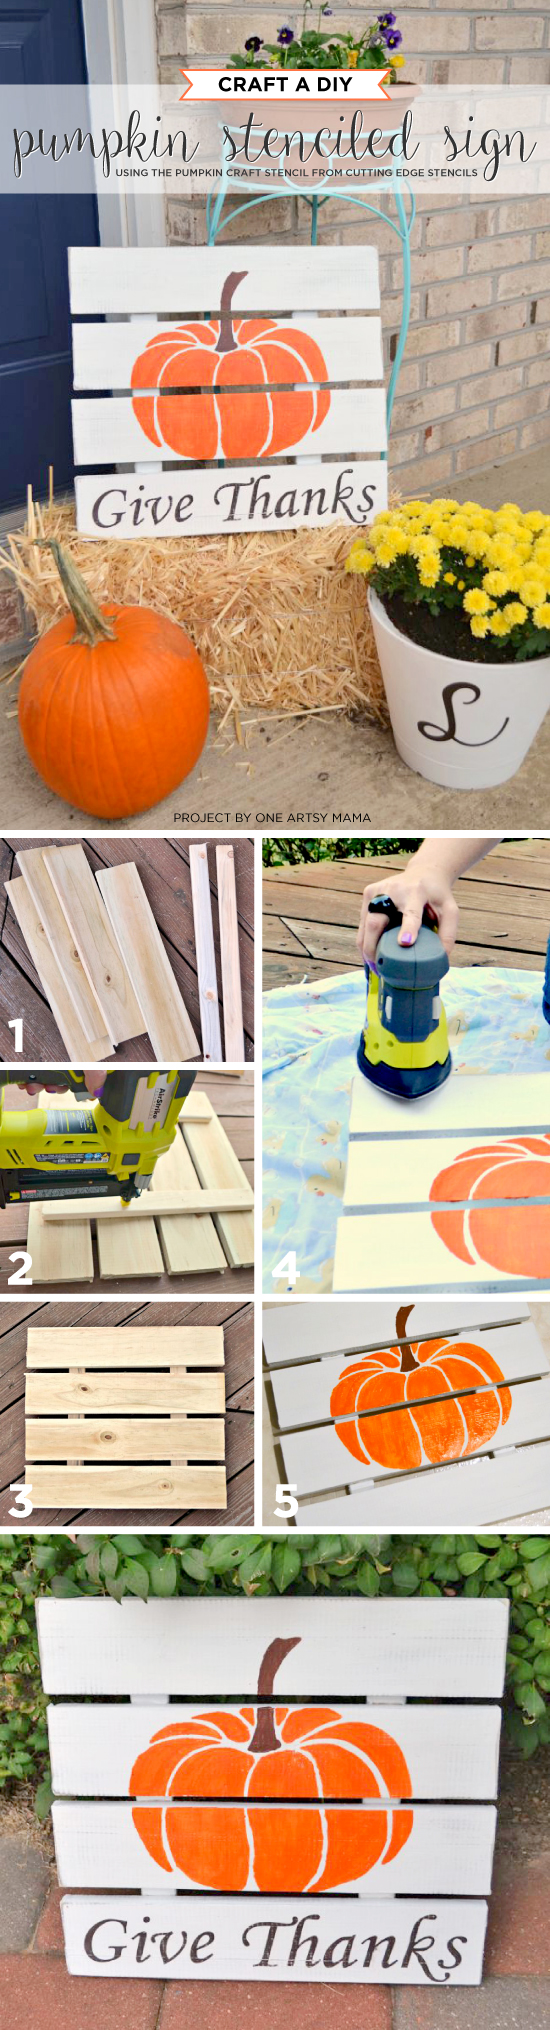 Cutting Edge Stencils shares how to create a DIY Fall inspired sign using the Pumpkin Craft Stencil. http://www.cuttingedgestencils.com/pumpkin-stencil-halloween-designs-for-accent-pillows-and-totes.html